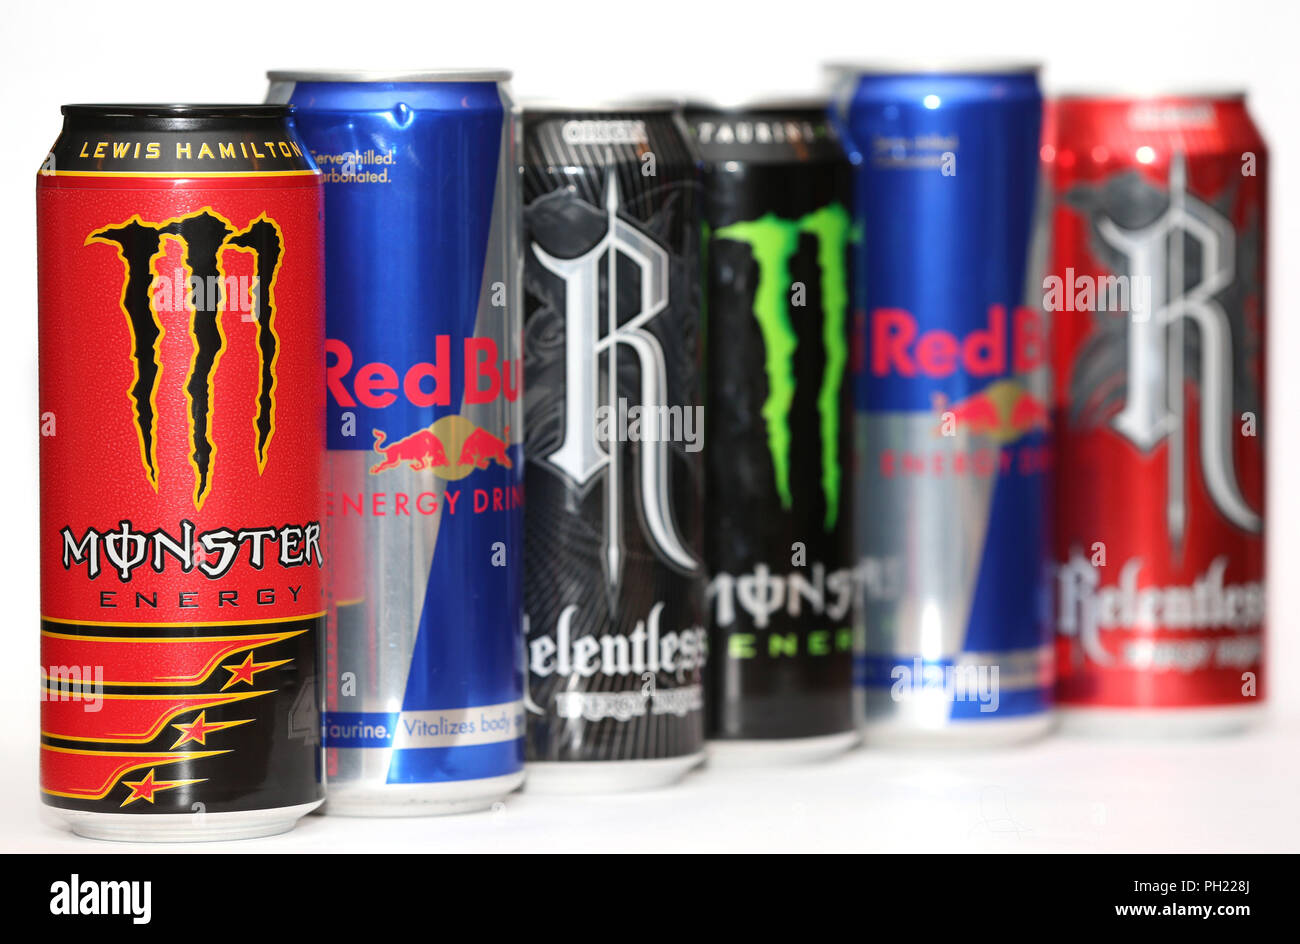 Red Bull Kühlschrank Dose : Cans red bull stockfotos cans red bull bilder alamy